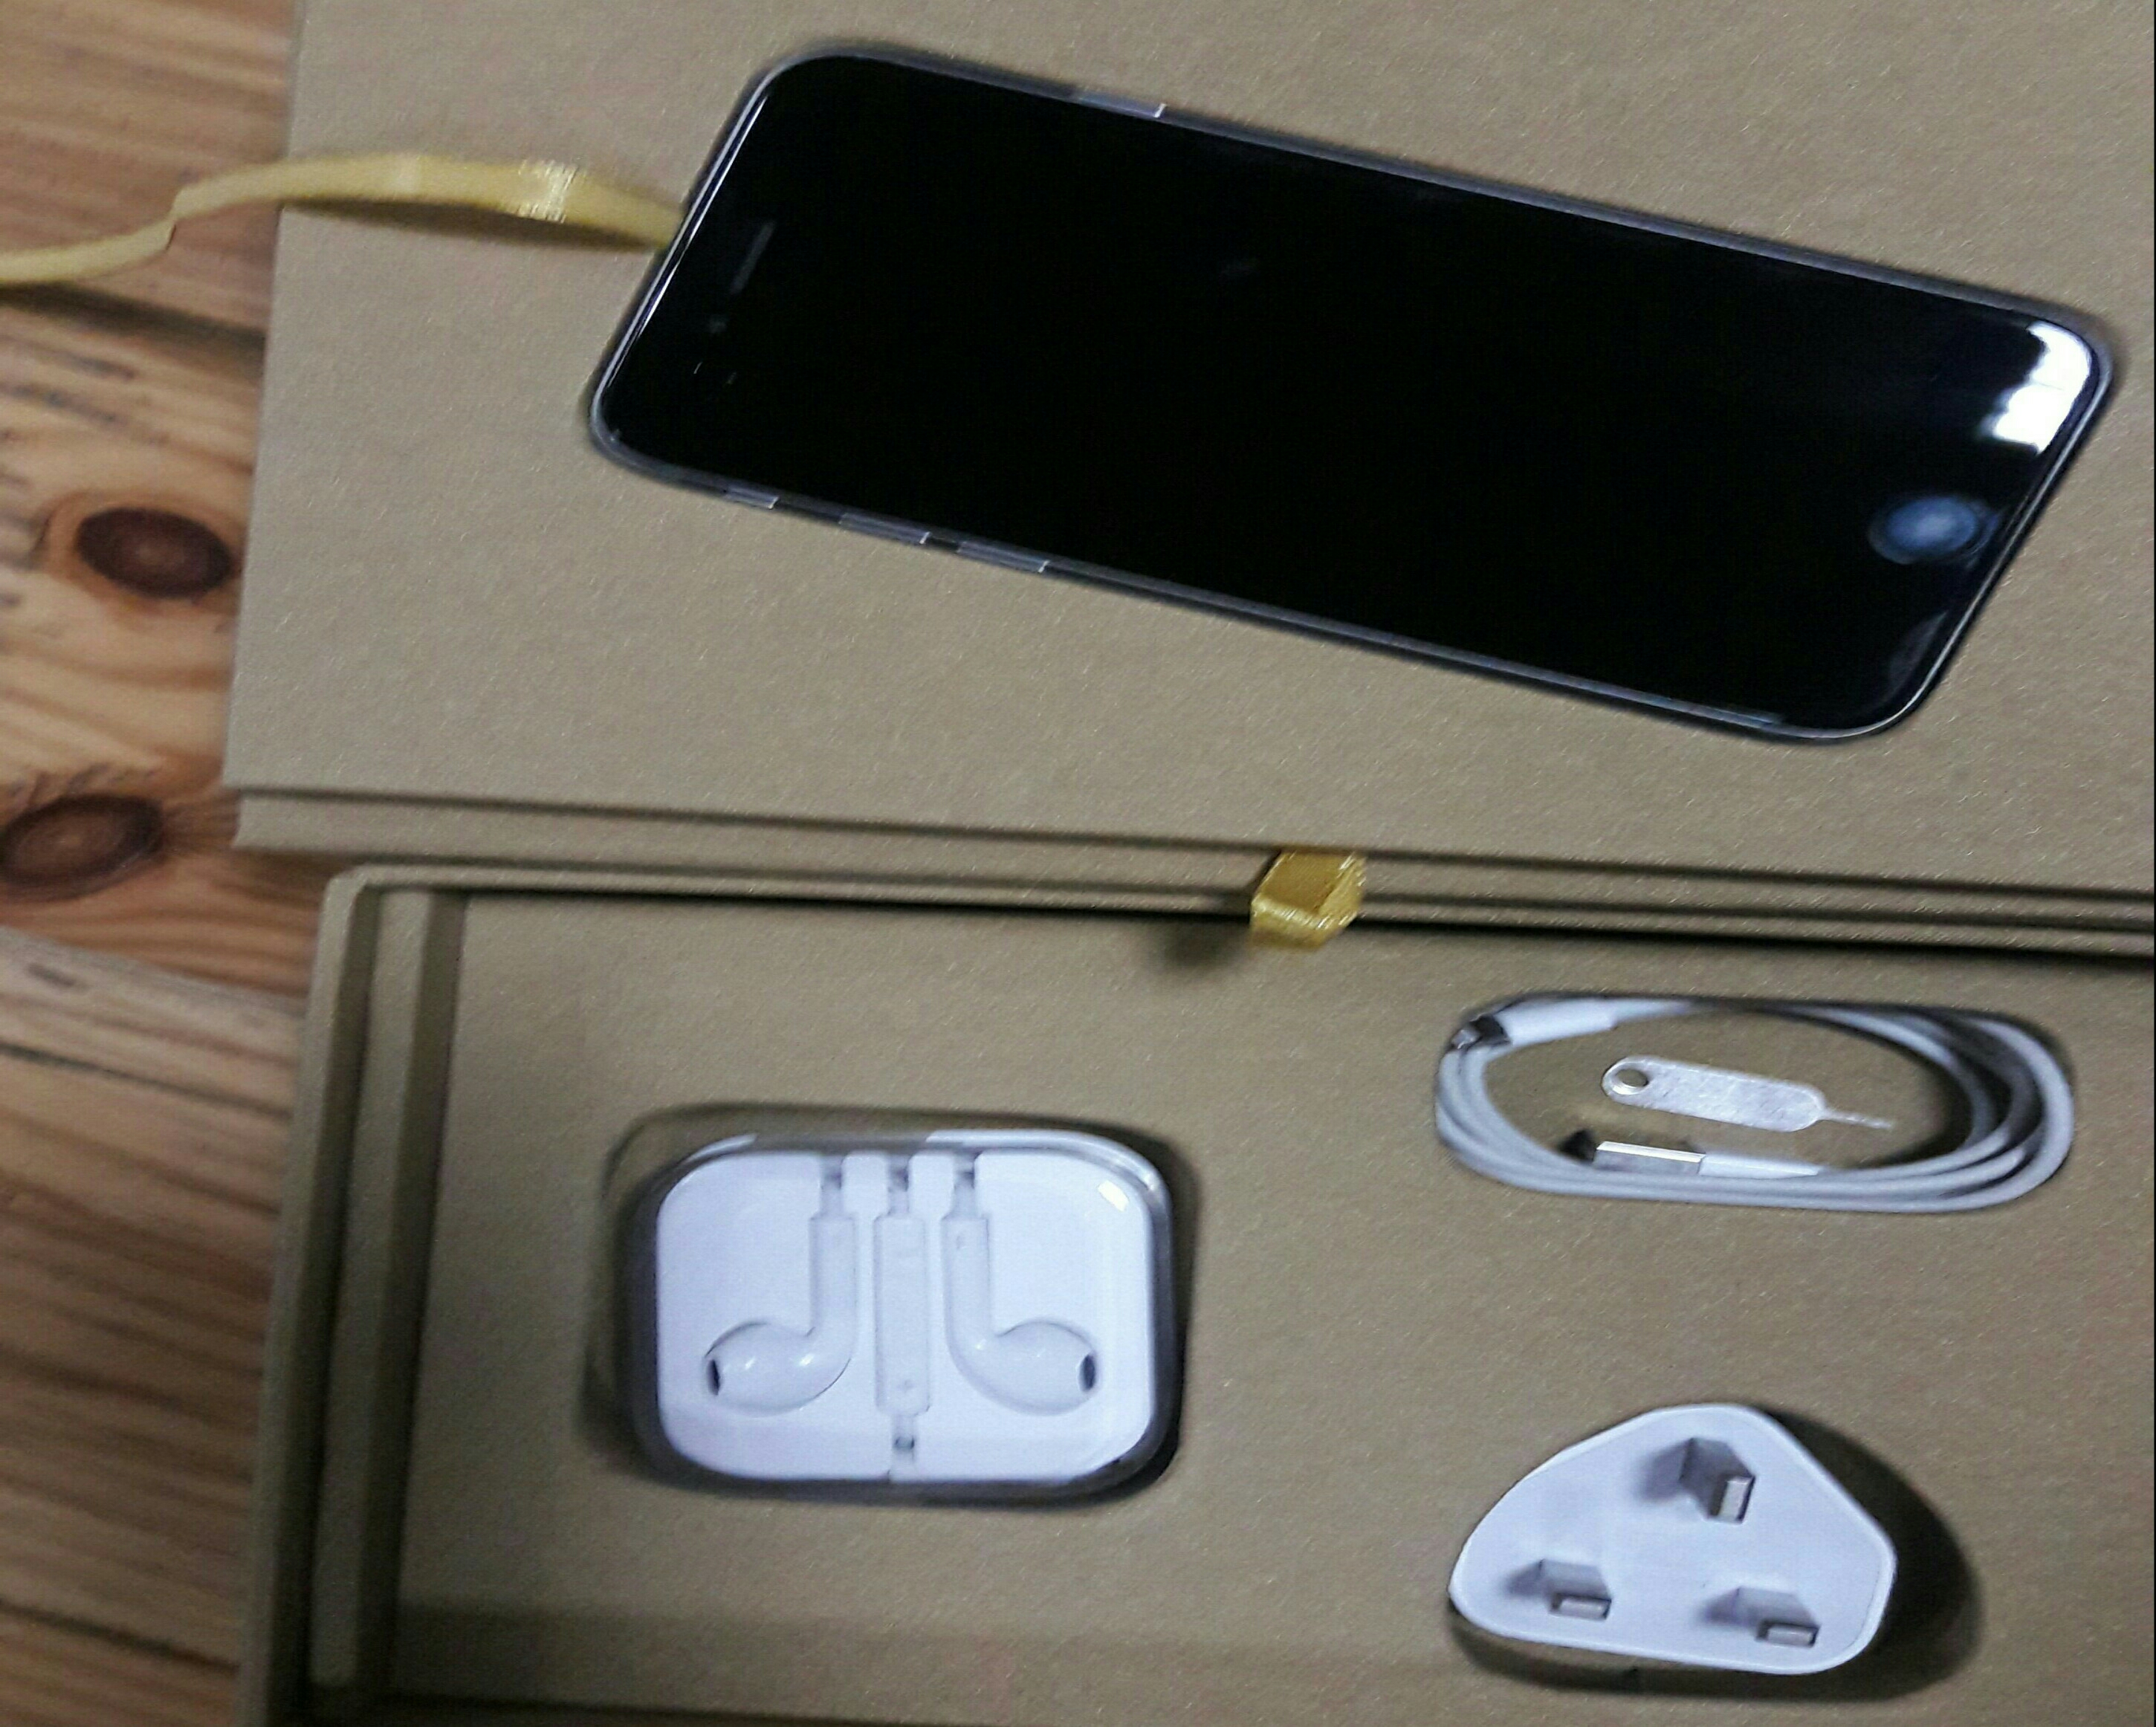 Iphone 6 16 Gb With Vip Box. Condition 10/10 6 months Used.